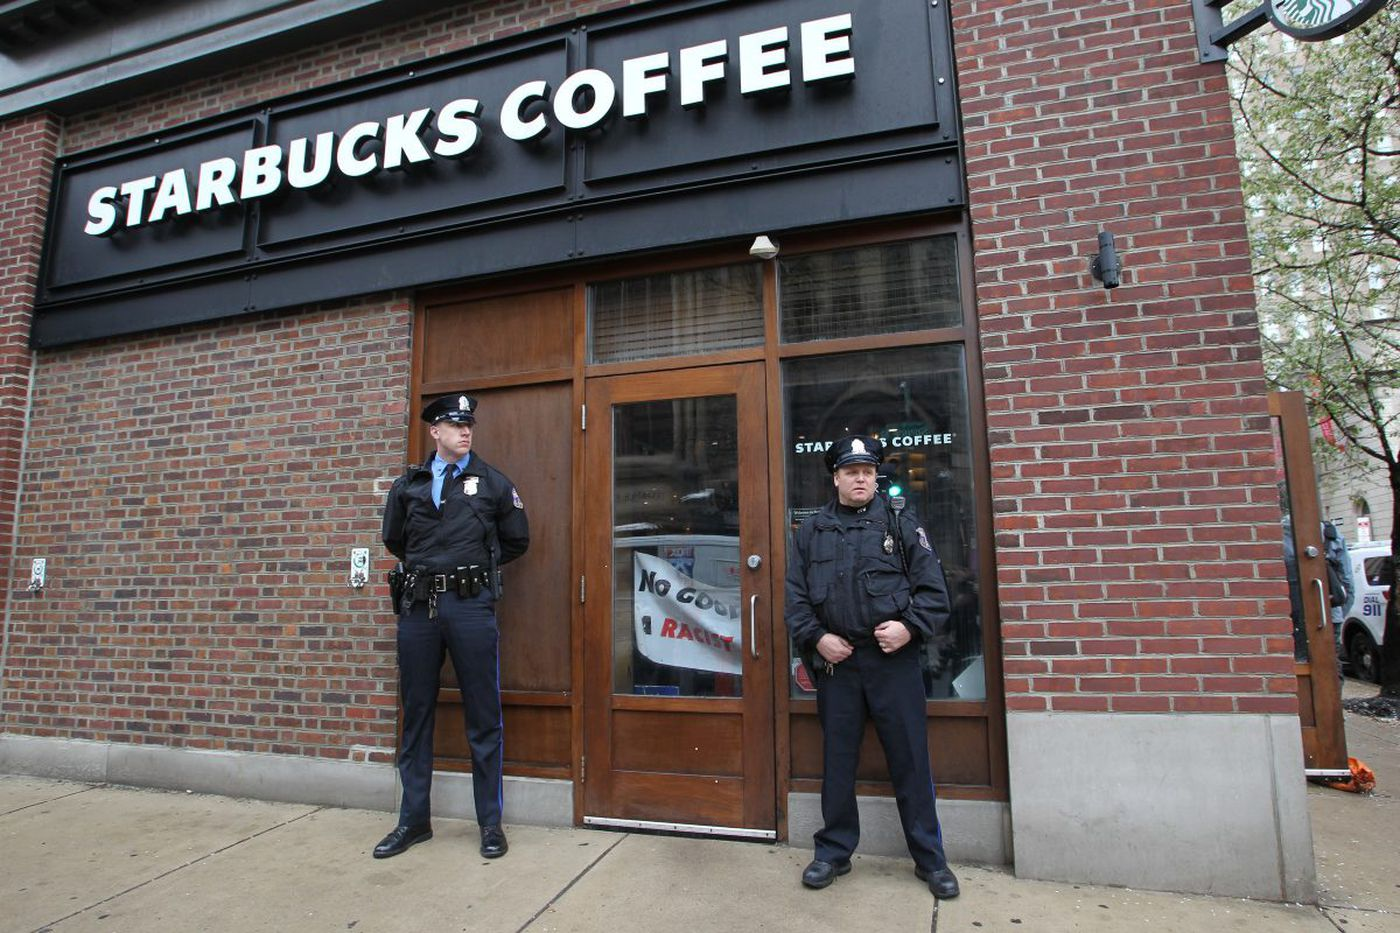 Philly police dispatcher after 911 call: 'group of males' was 'causing a disturbance' at Starbucks